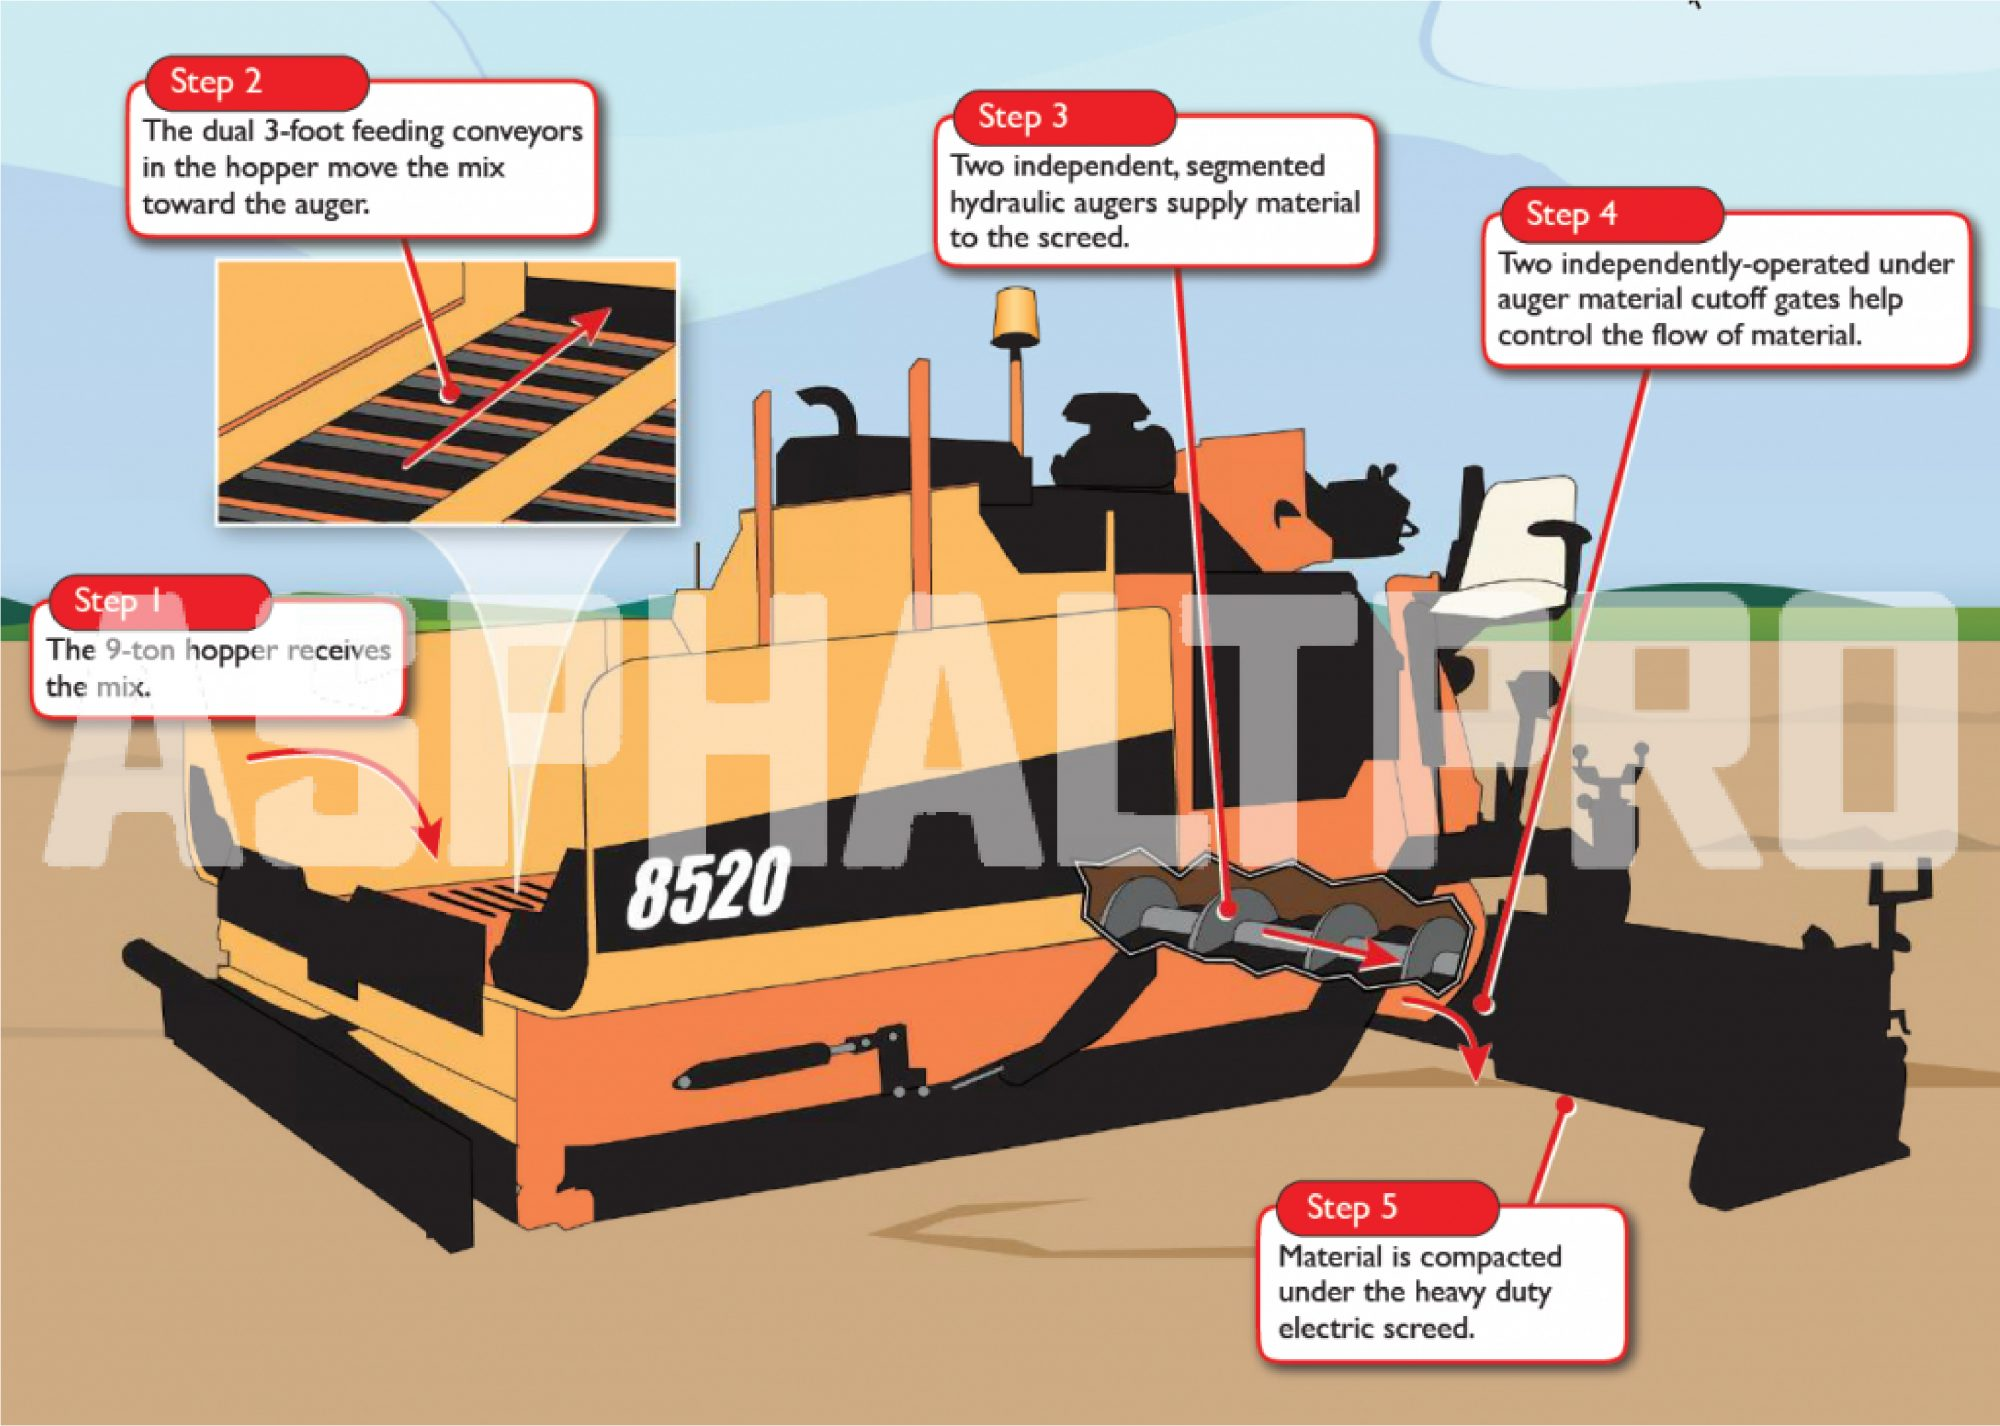 The 8520 Asphalt Paver From Leeboy Lincolnton North Carolina May Look Like The Companys 8515 Asphalt Paver But Its Stretched Frame Packs A Powerful